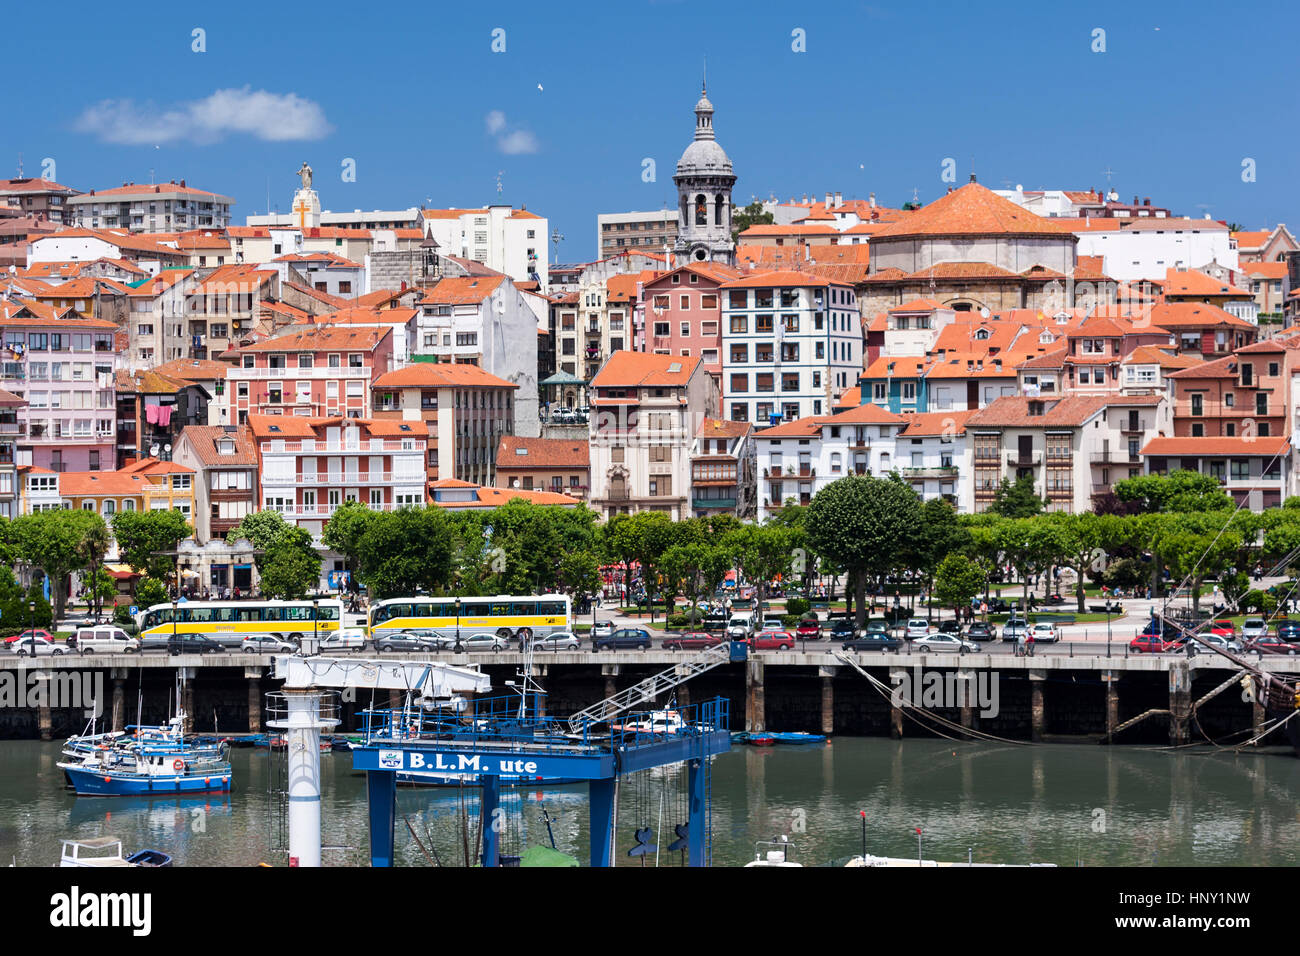 lekeitio-fishing-port-town-in-biscay-wit